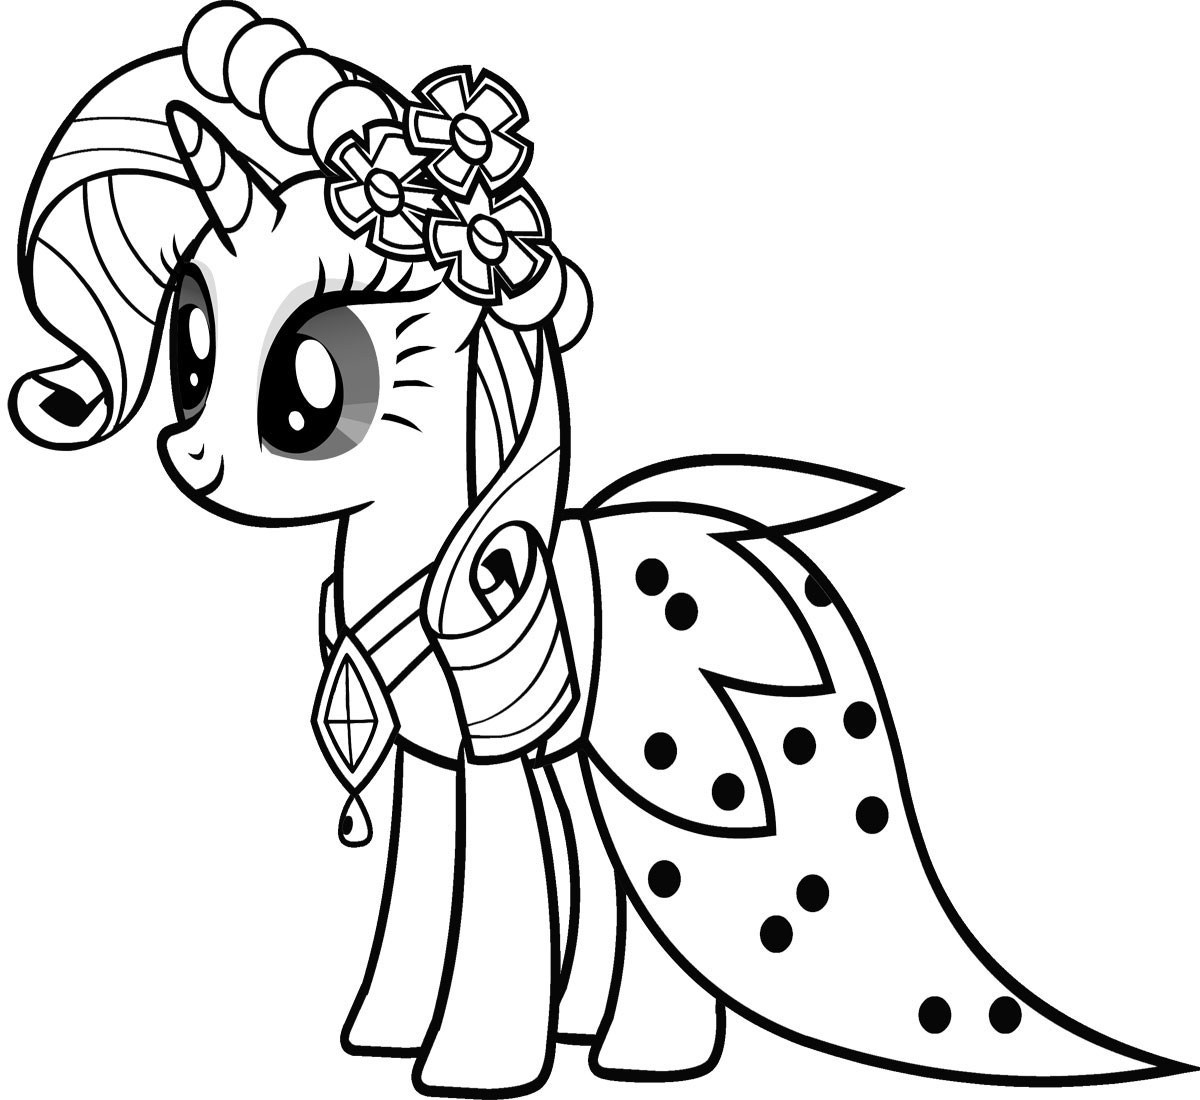 image regarding My Little Pony Coloring Pages Printable identify No cost Printable My Small Pony Coloring Web pages For Young children